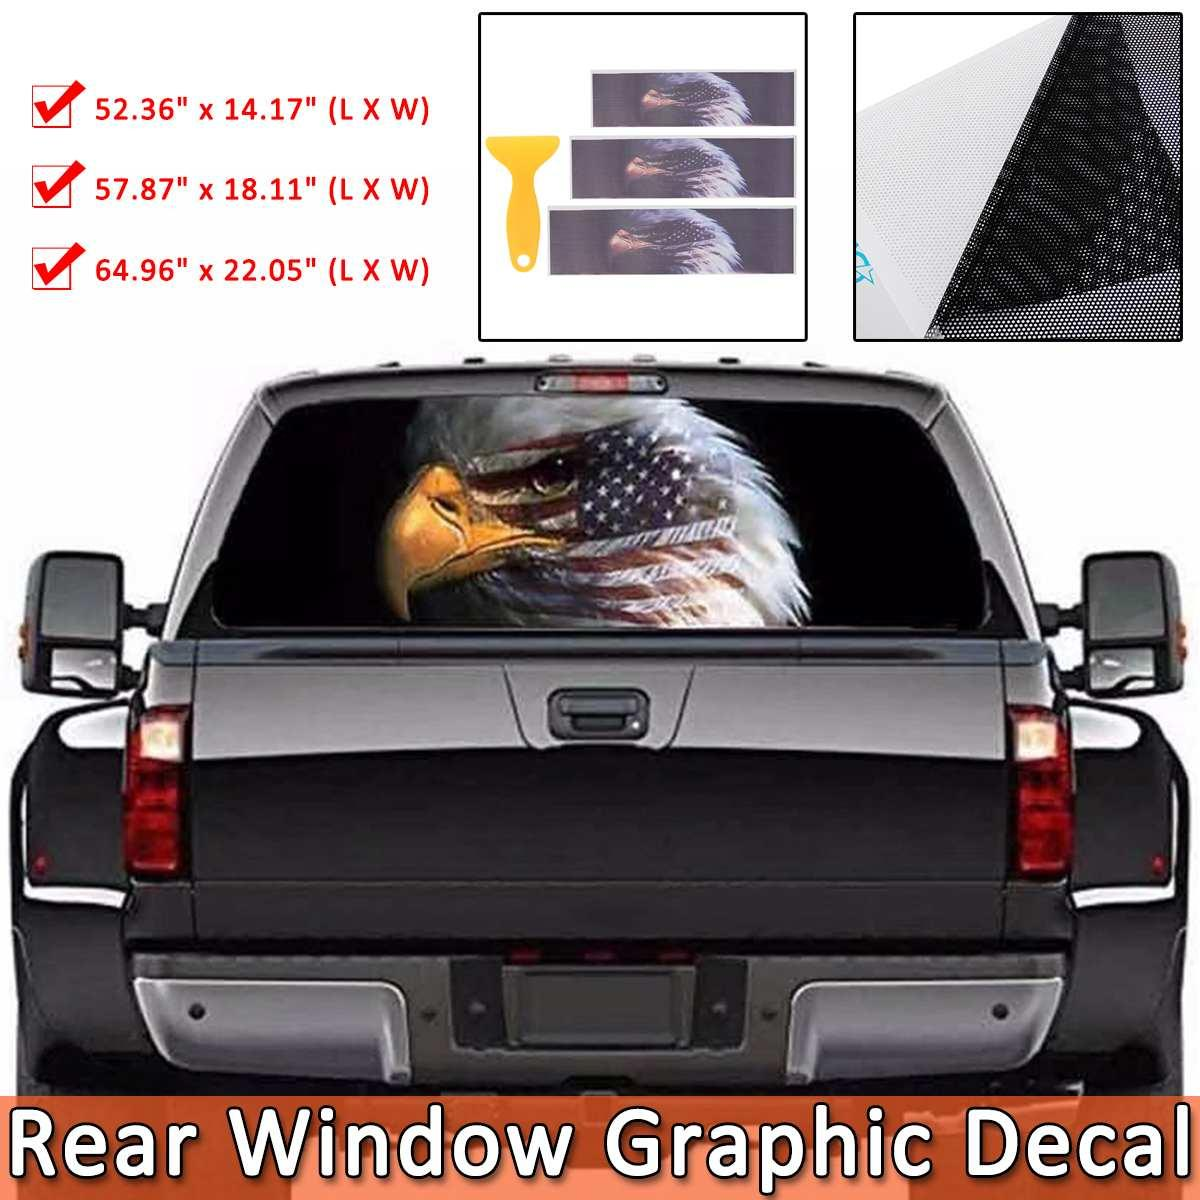 2019 flag bald eagle rear window graphic decal sticker car truck suv van reaper rear window vinyl decal with install tool from suozhi1999 19 34 dhgate